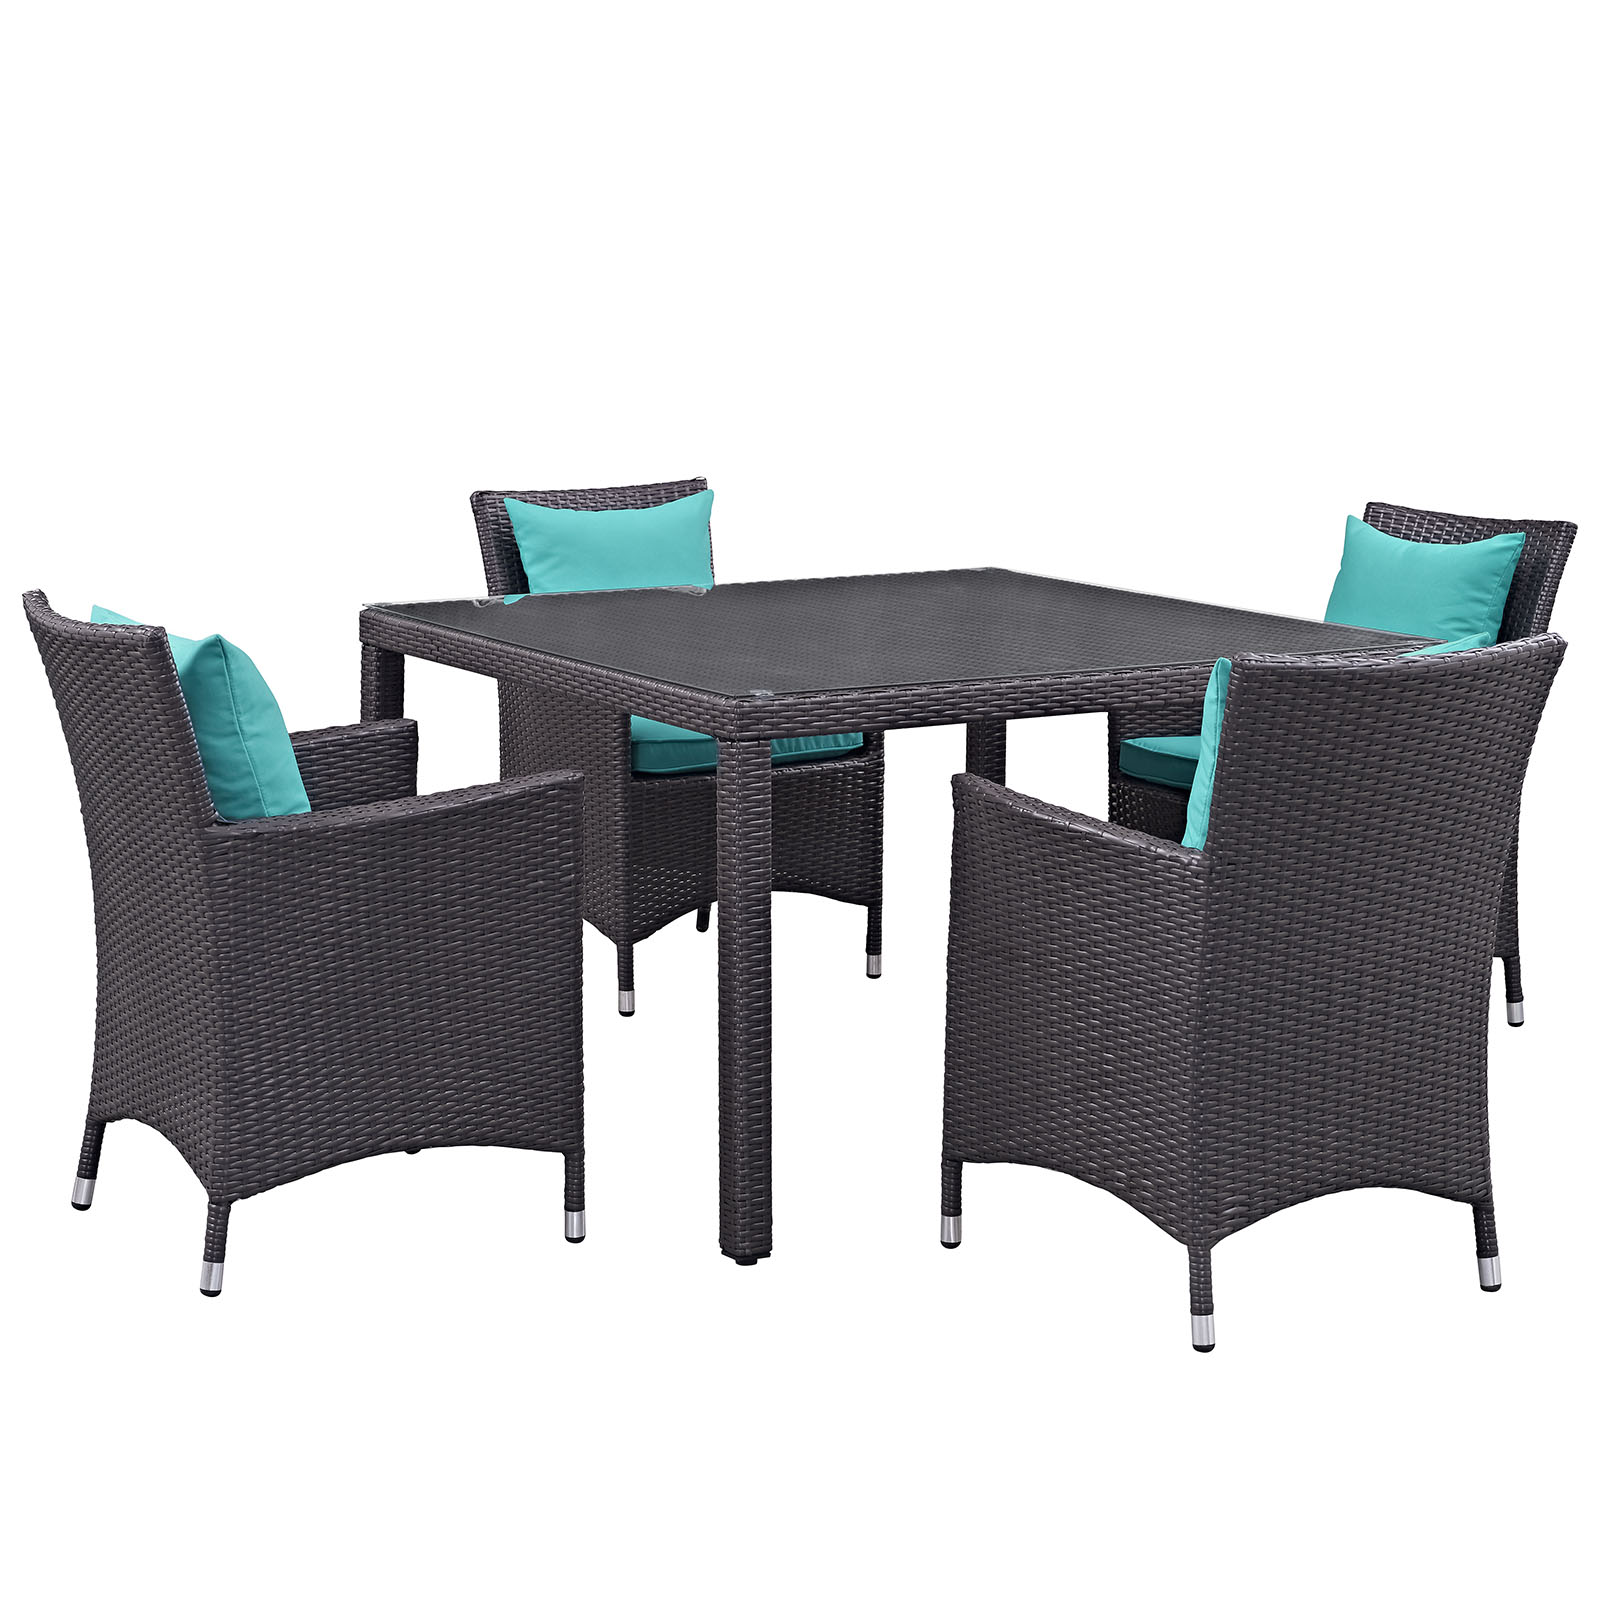 Modern Contemporary Urban Design Outdoor Patio Balcony Five PCS Dining Chairs and Table Set, Blue, Rattan